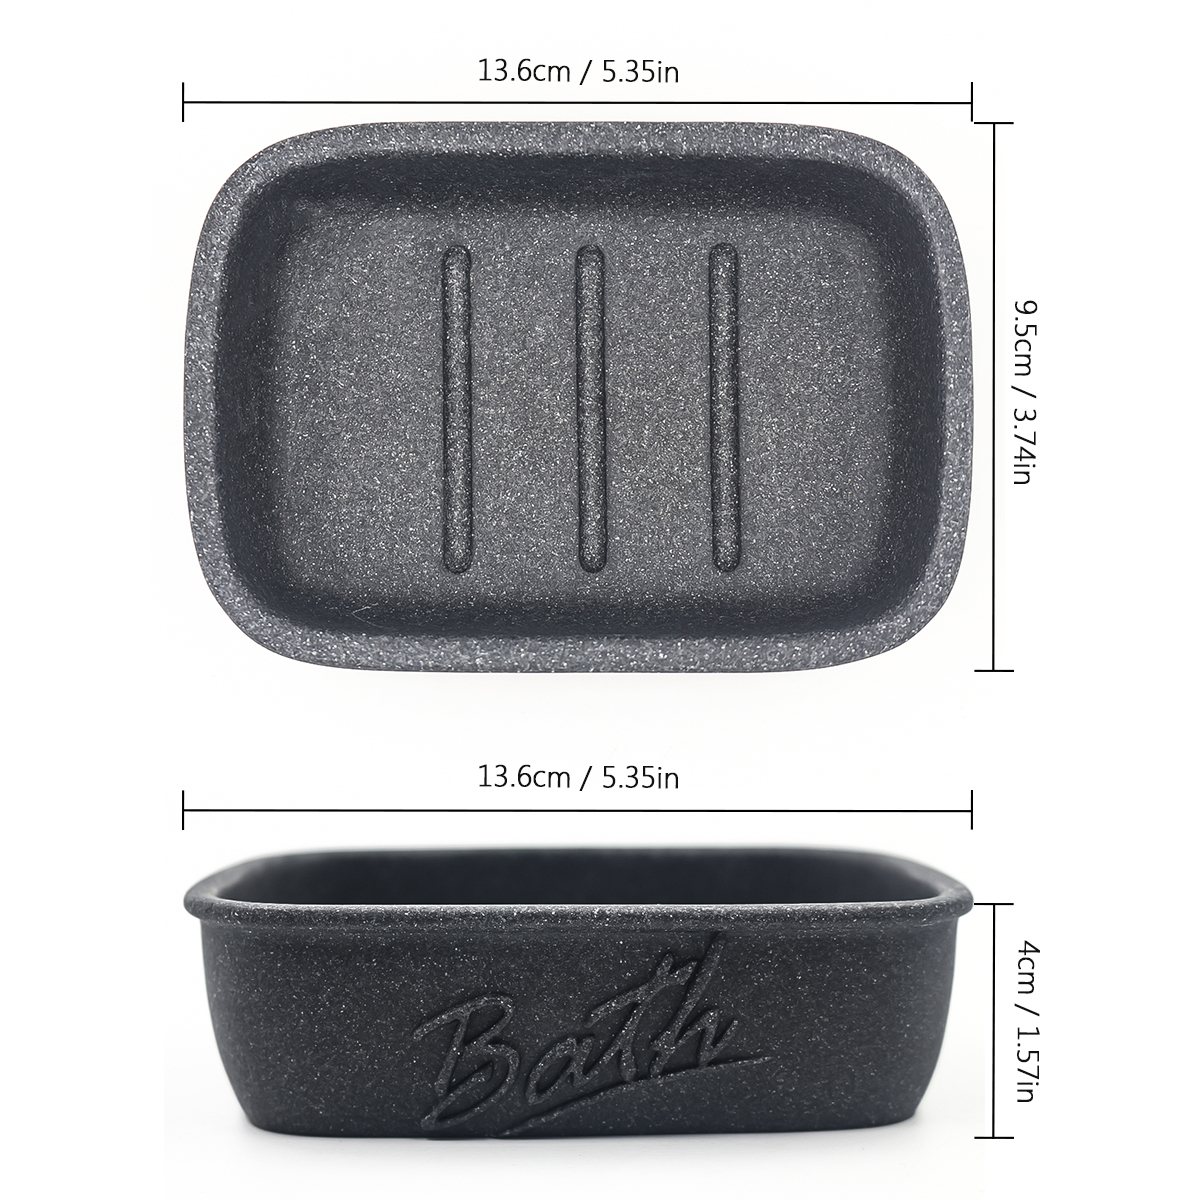 Resin Soap Dish Saver Box Shower Soap Case Holder for Bathroom Kitchen Sink Sandstone Appearance Easy Clean Anti Mould in Portable Soap Dishes from Home Garden